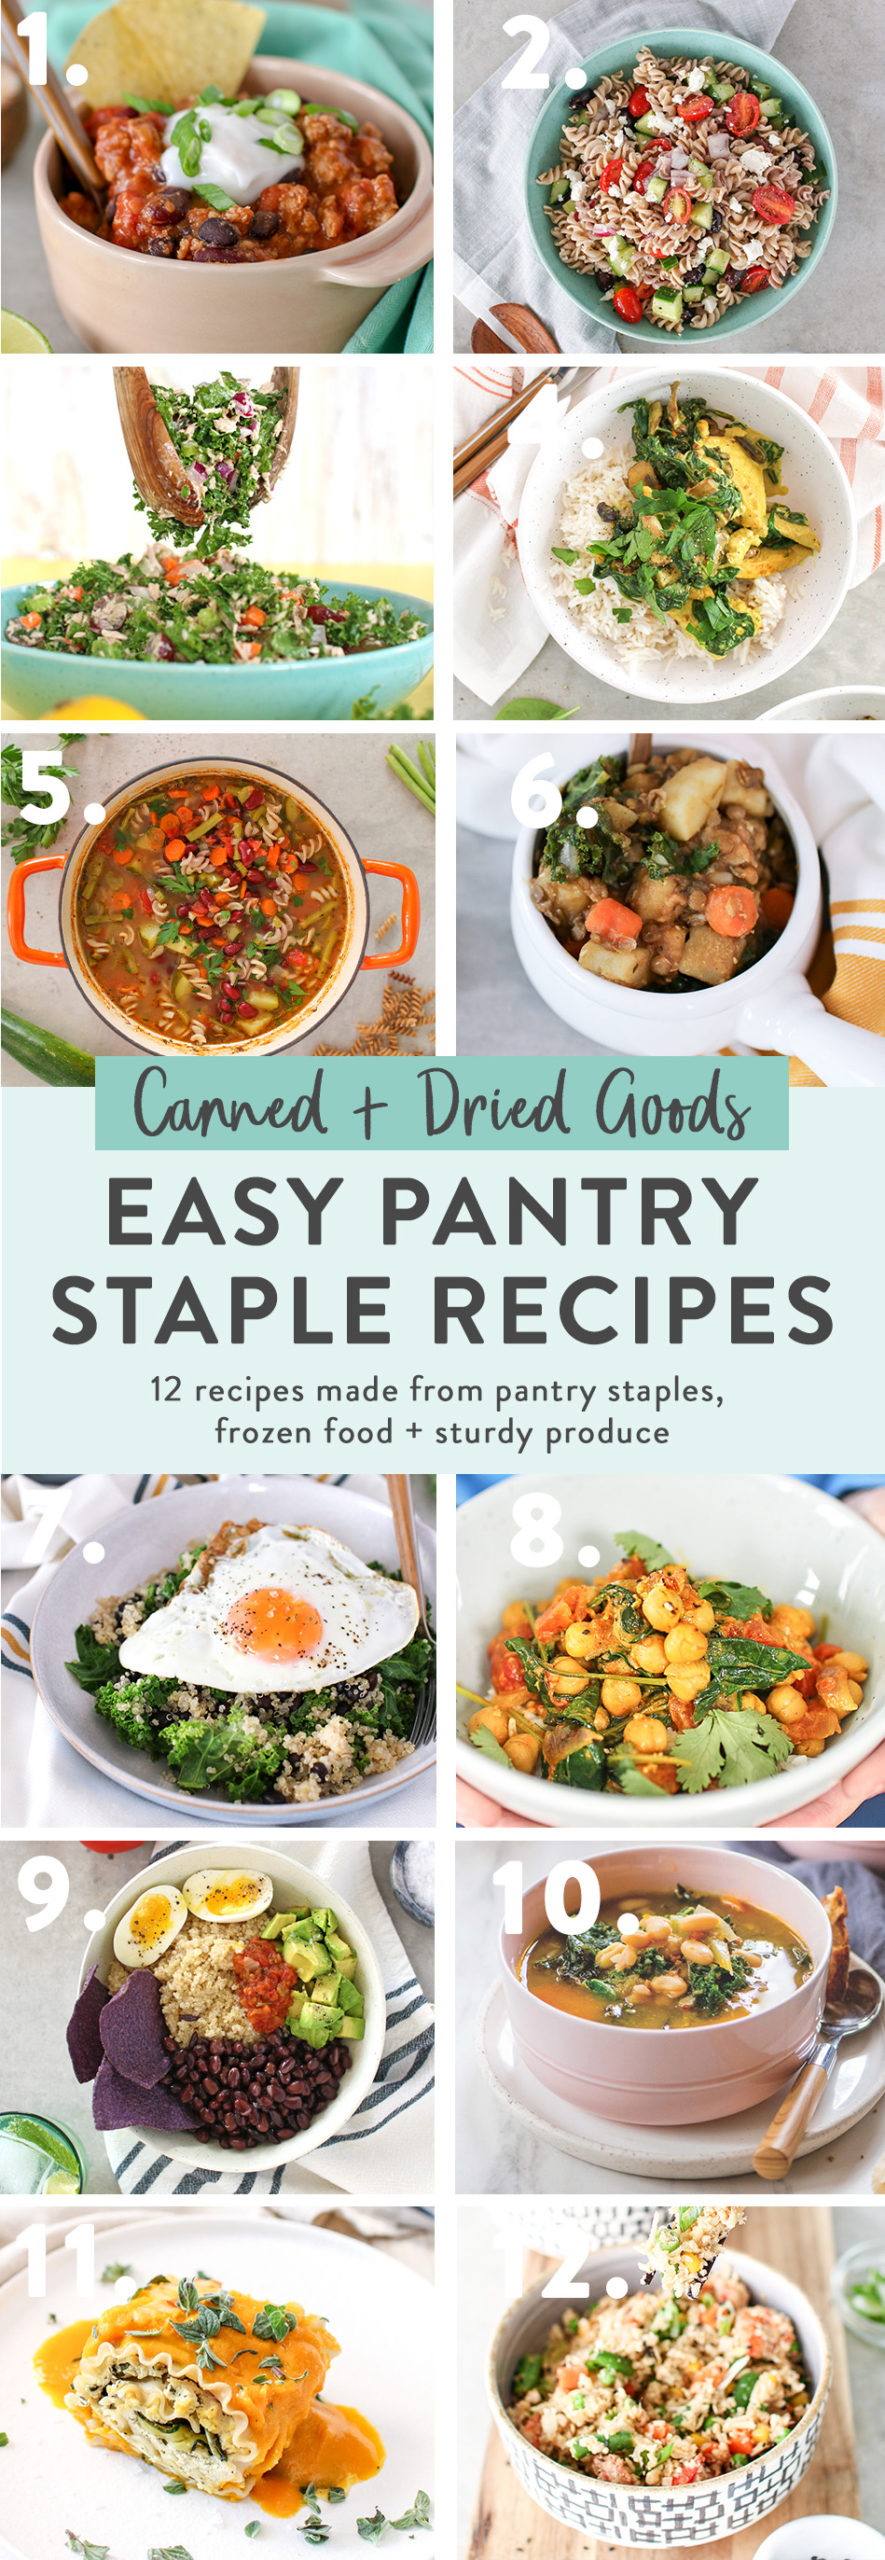 14 Easy Pantry Staple Recipes that you can make with ingredients you likely already have on hand in your pantry or freezer!